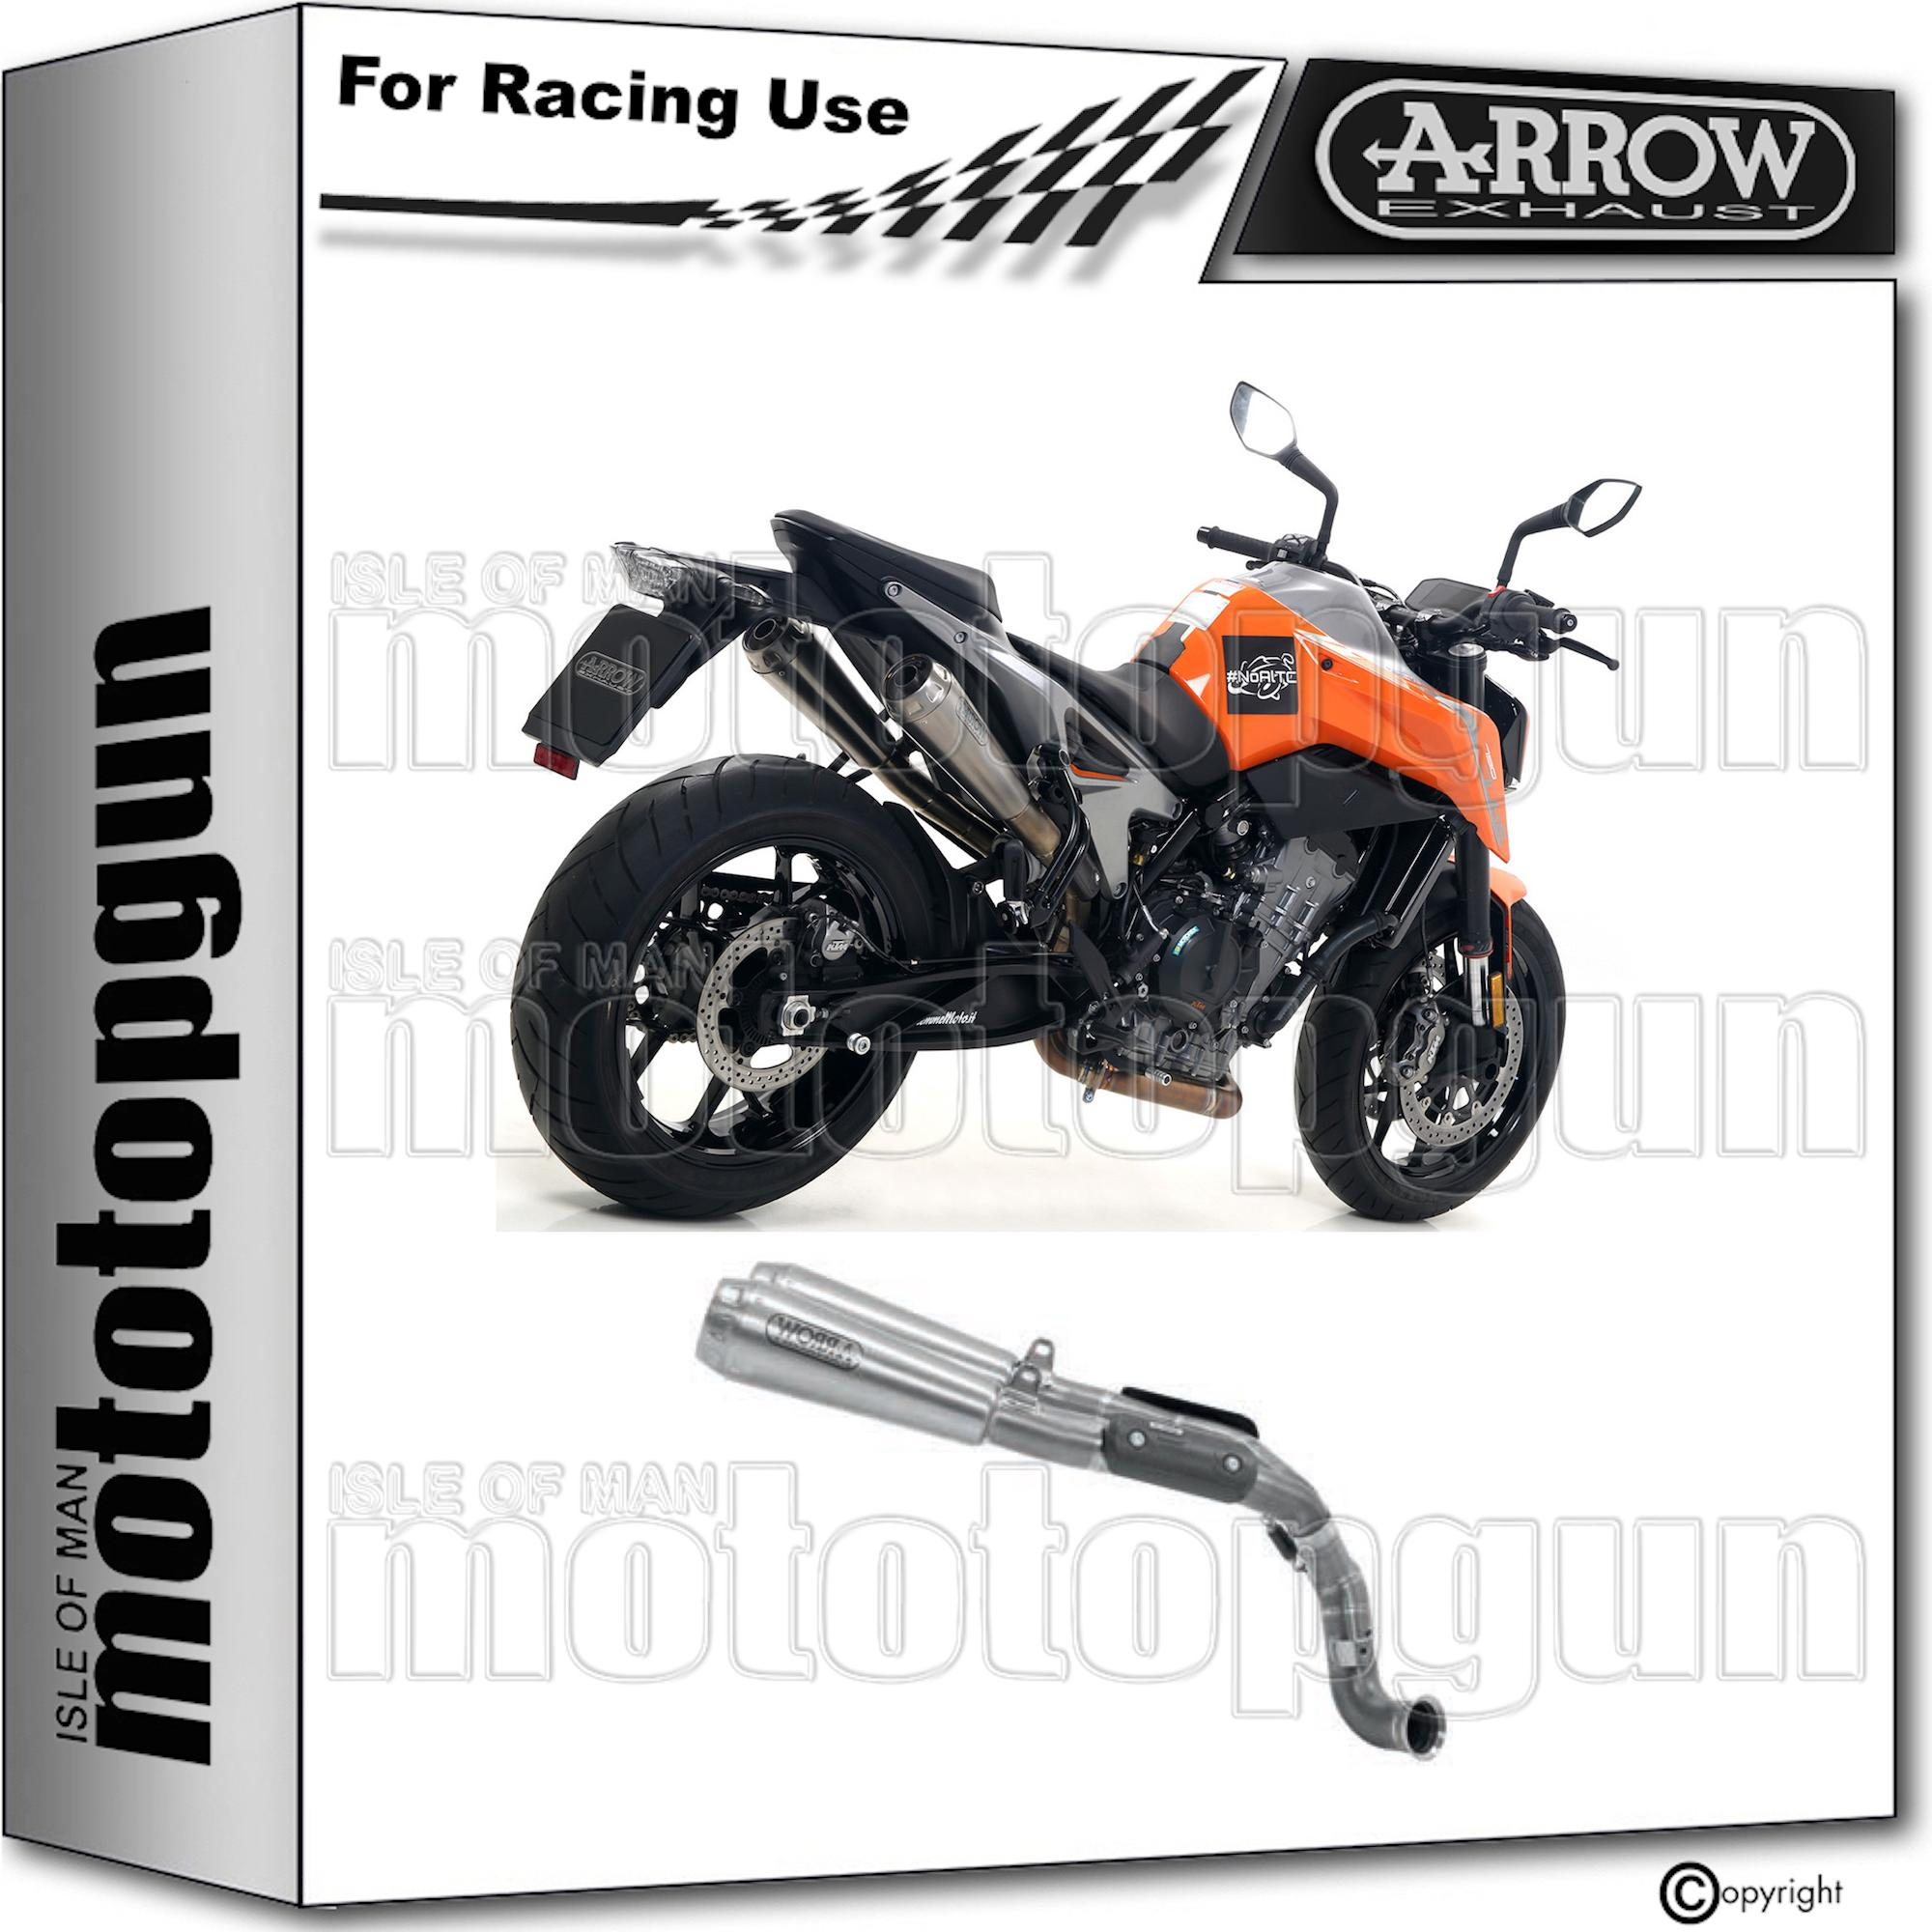 ARROW 2 KIT TUBO DE ESCAPE RACE PRO-RACE KTM DUKE 790 2018 18 2019 19